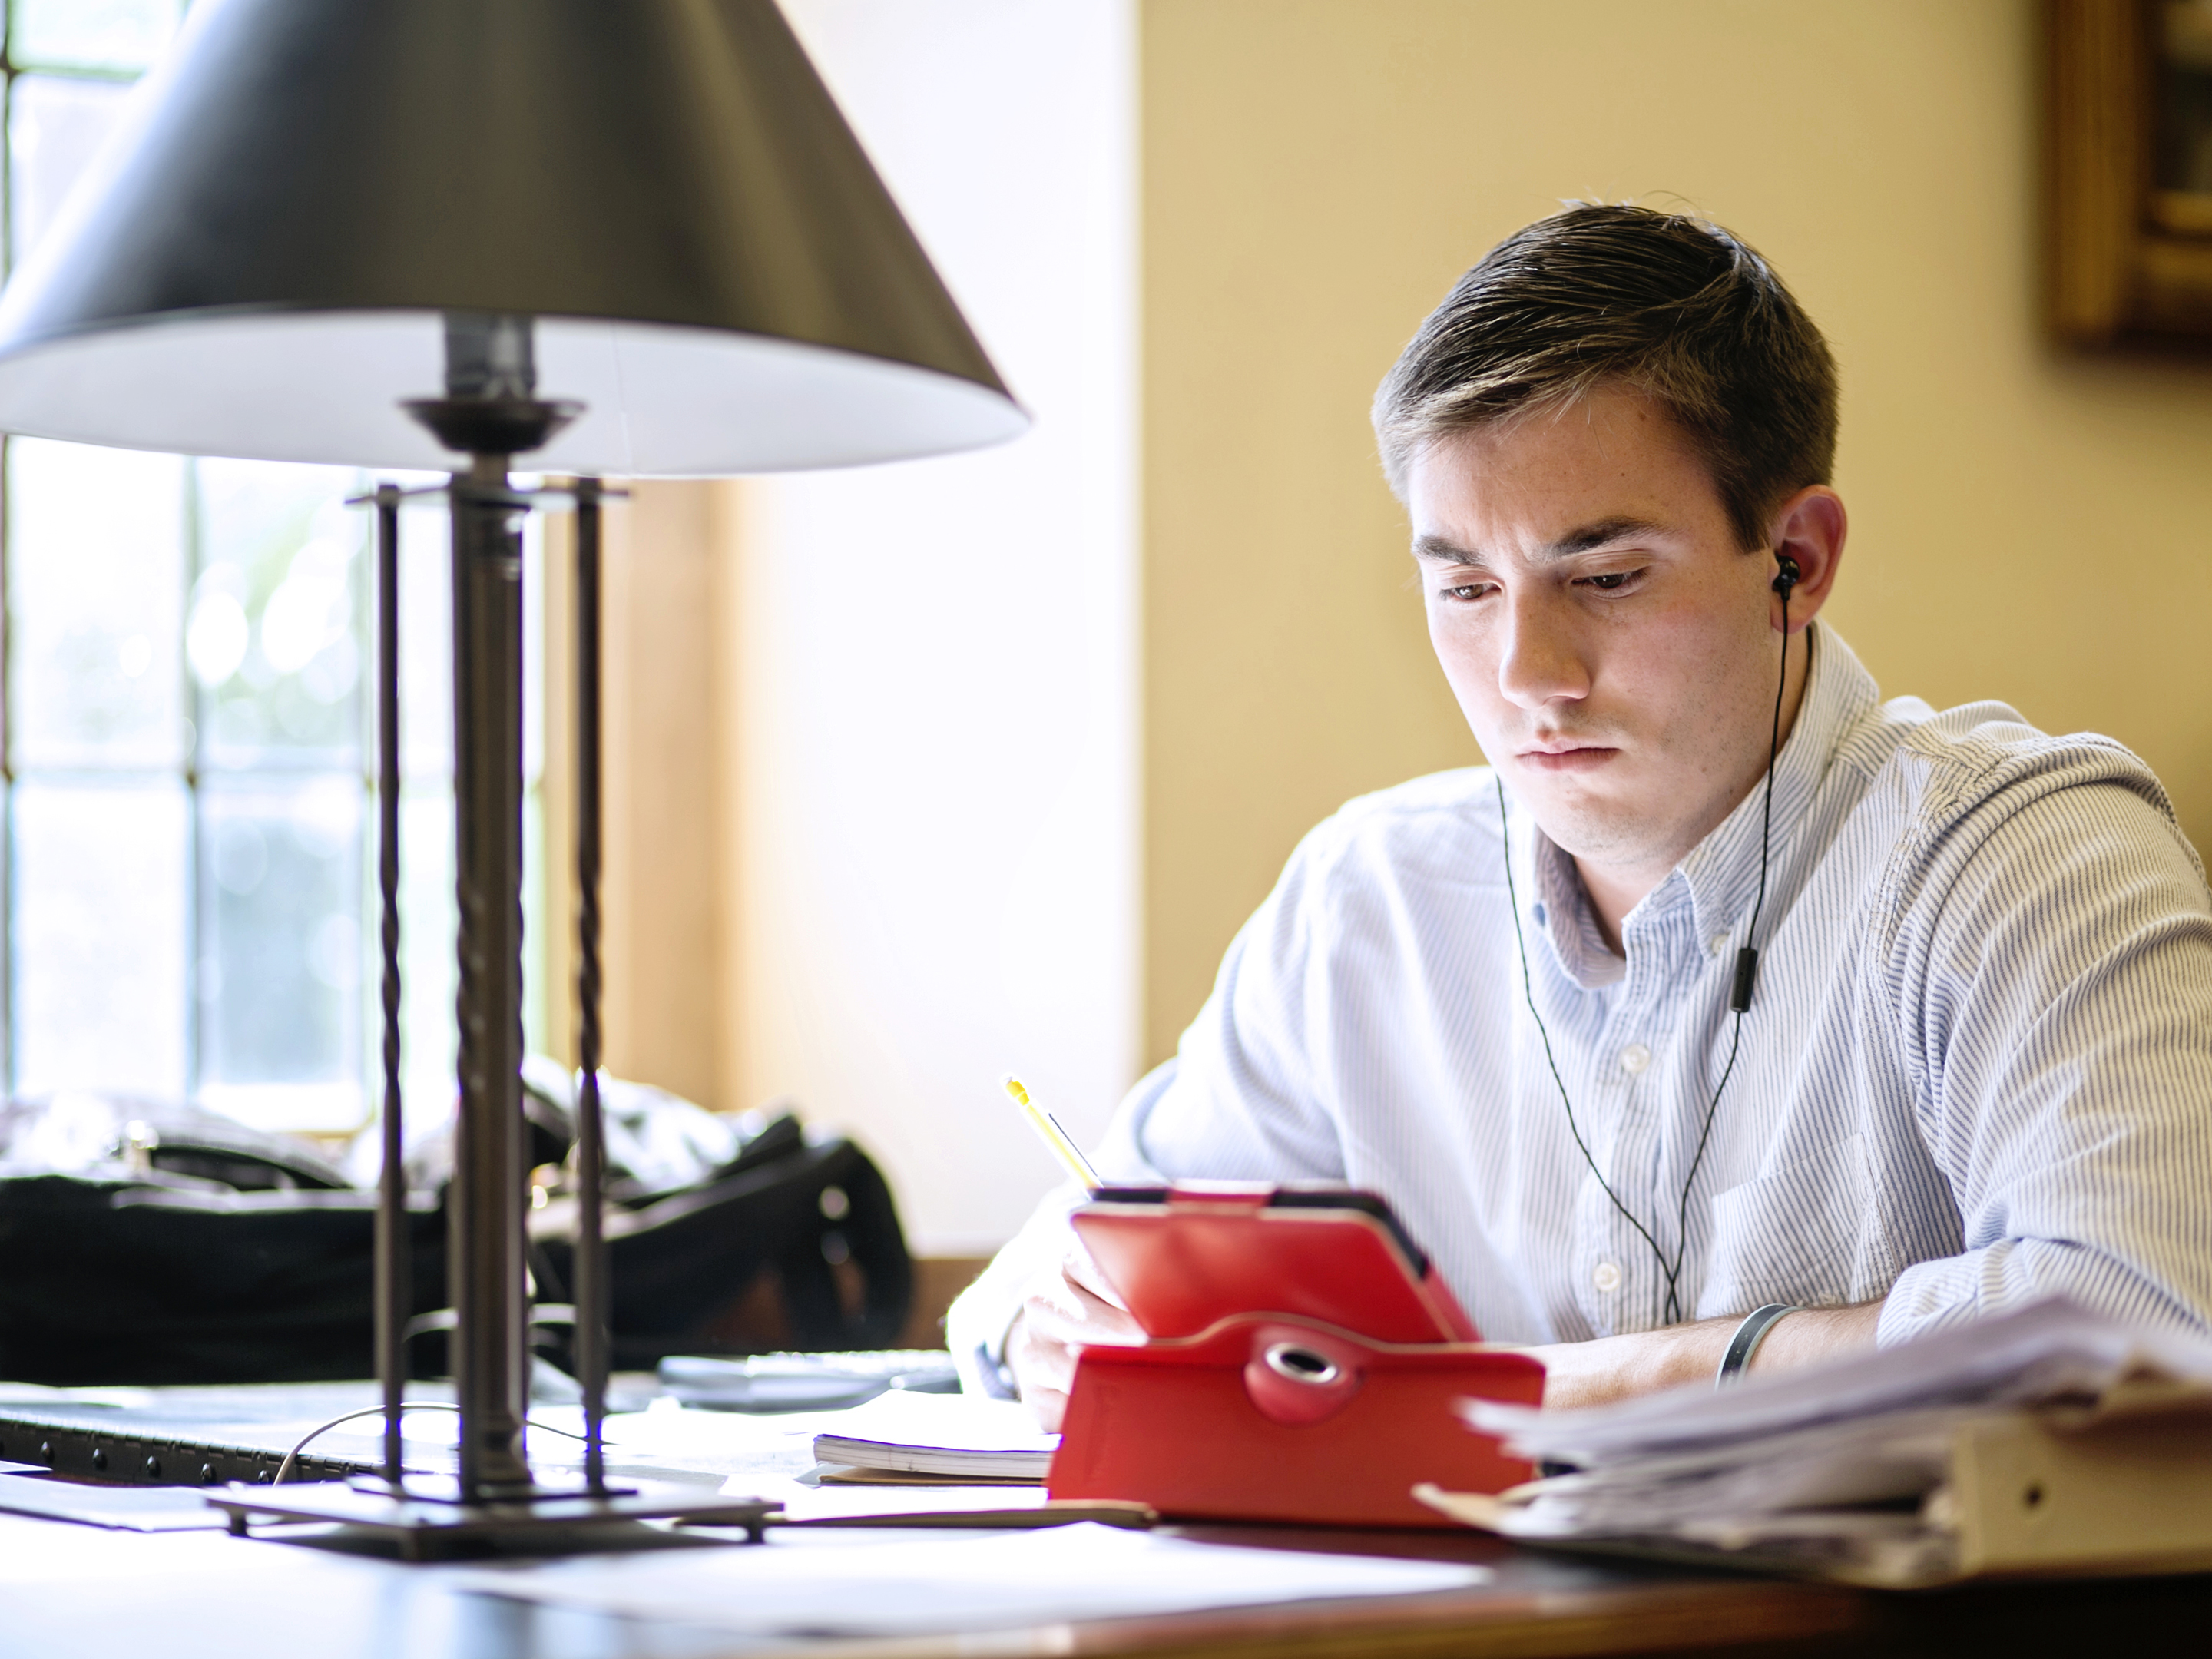 A young man with a tablet in a bright red leather case sits studying at a library table.